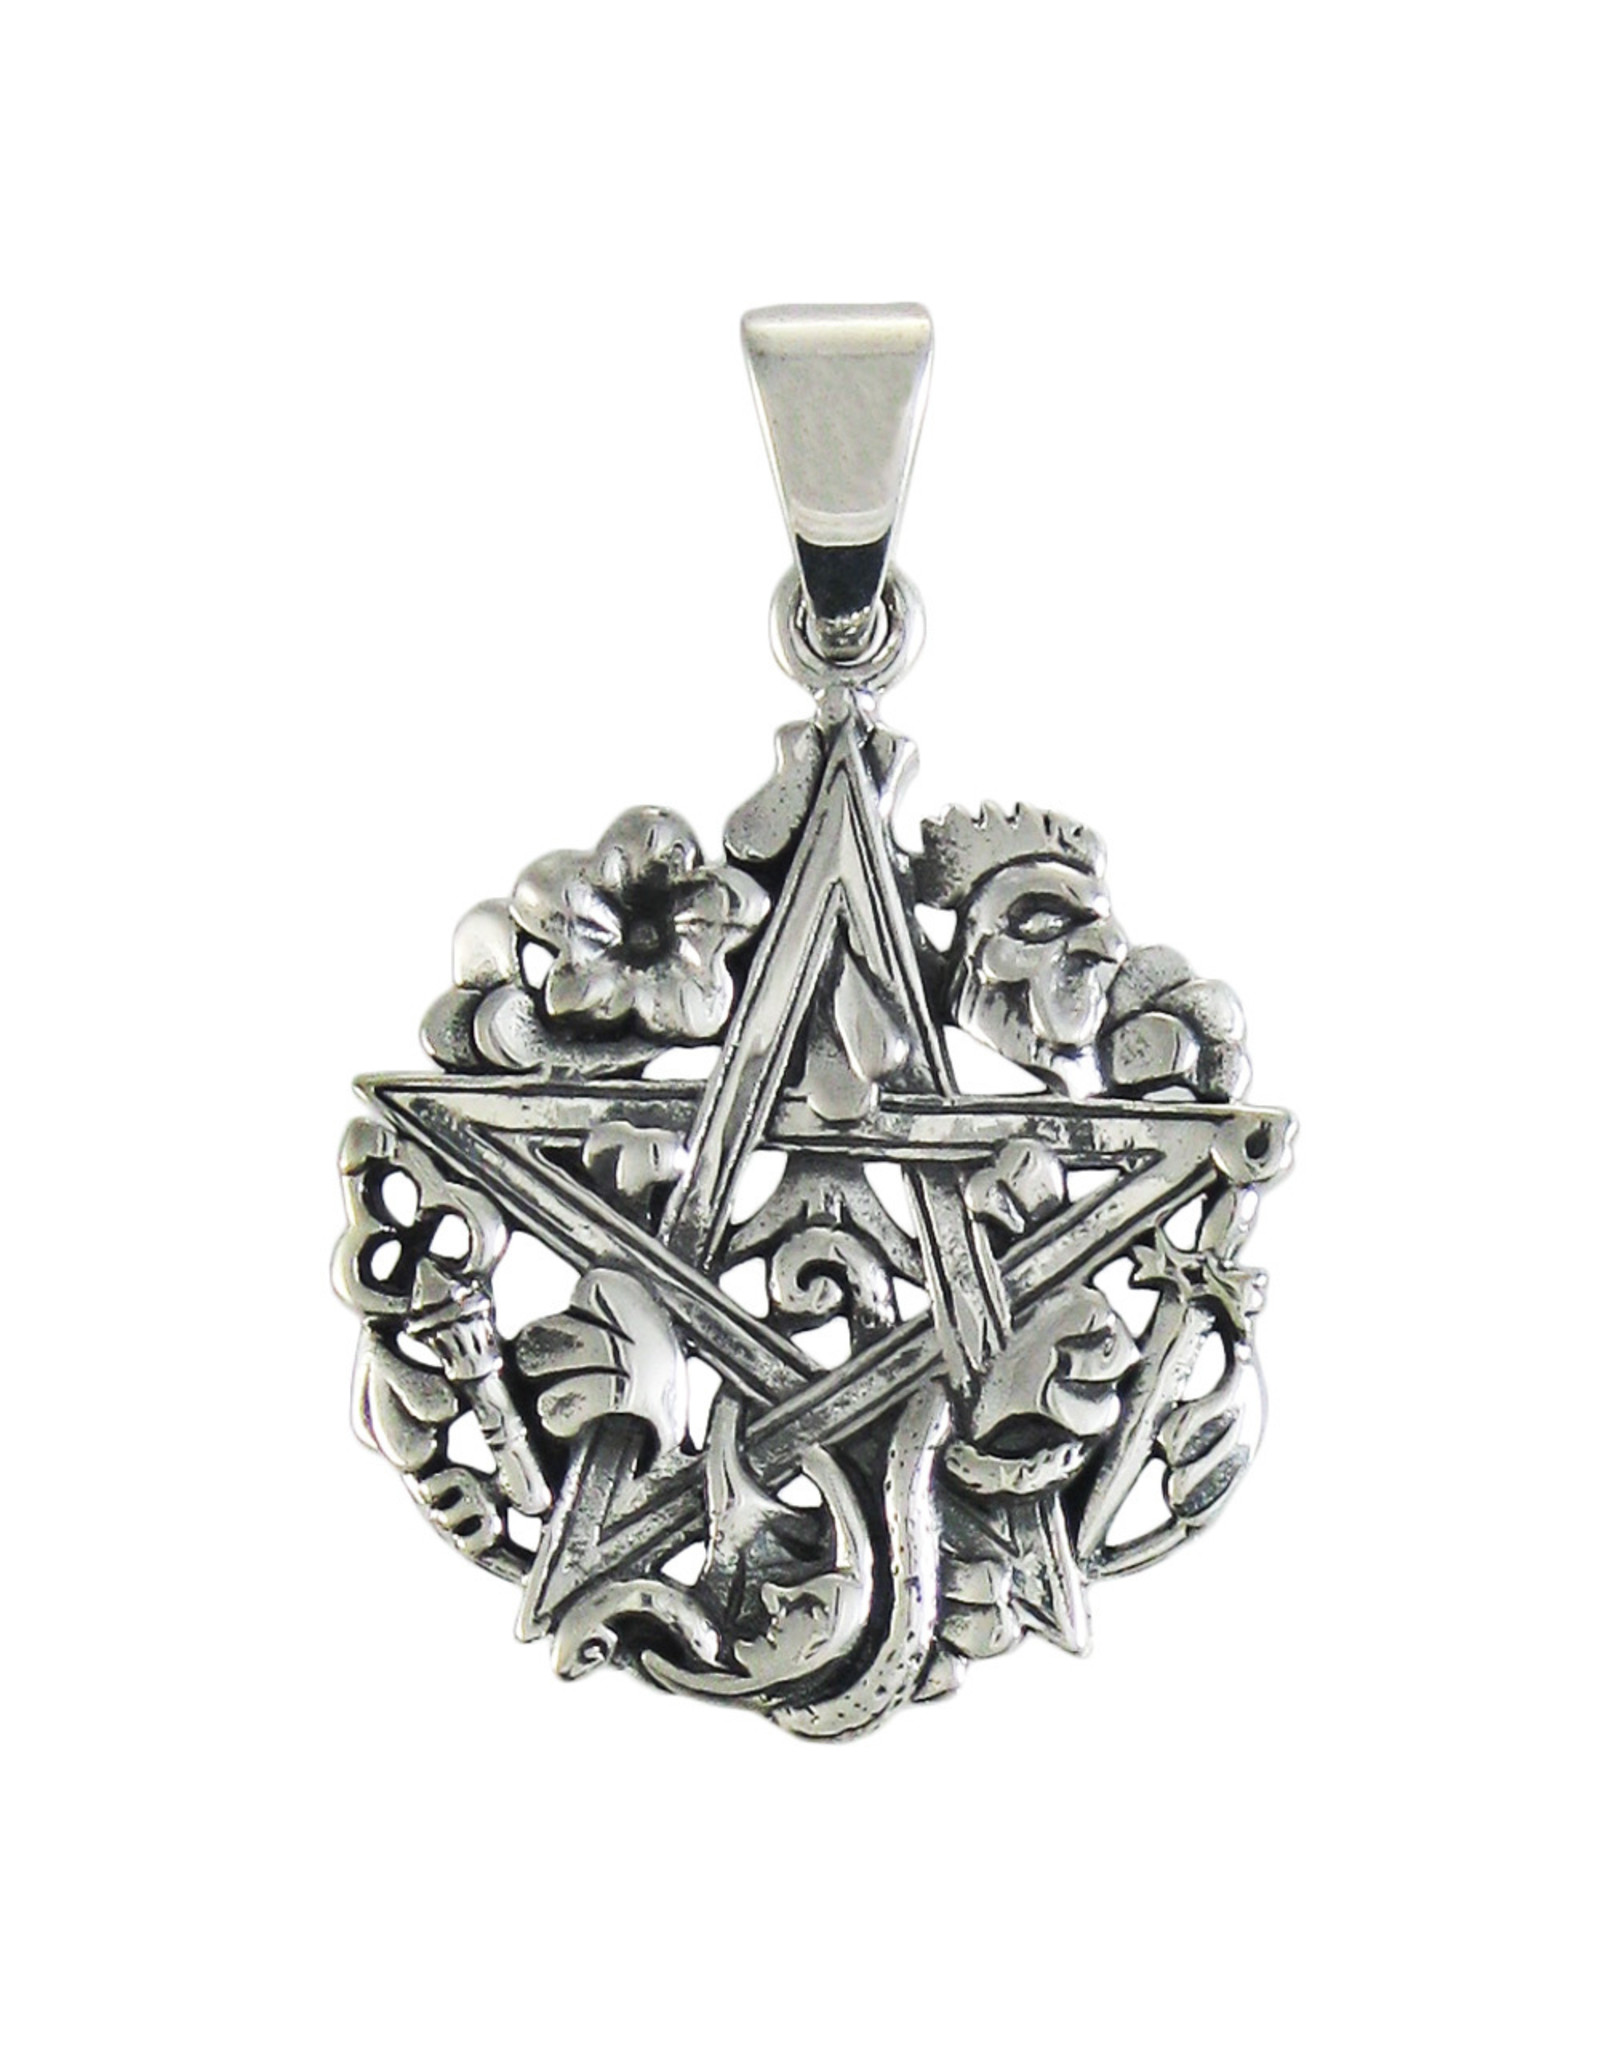 Cimaruta Pentacle Pendant in Sterling Silver